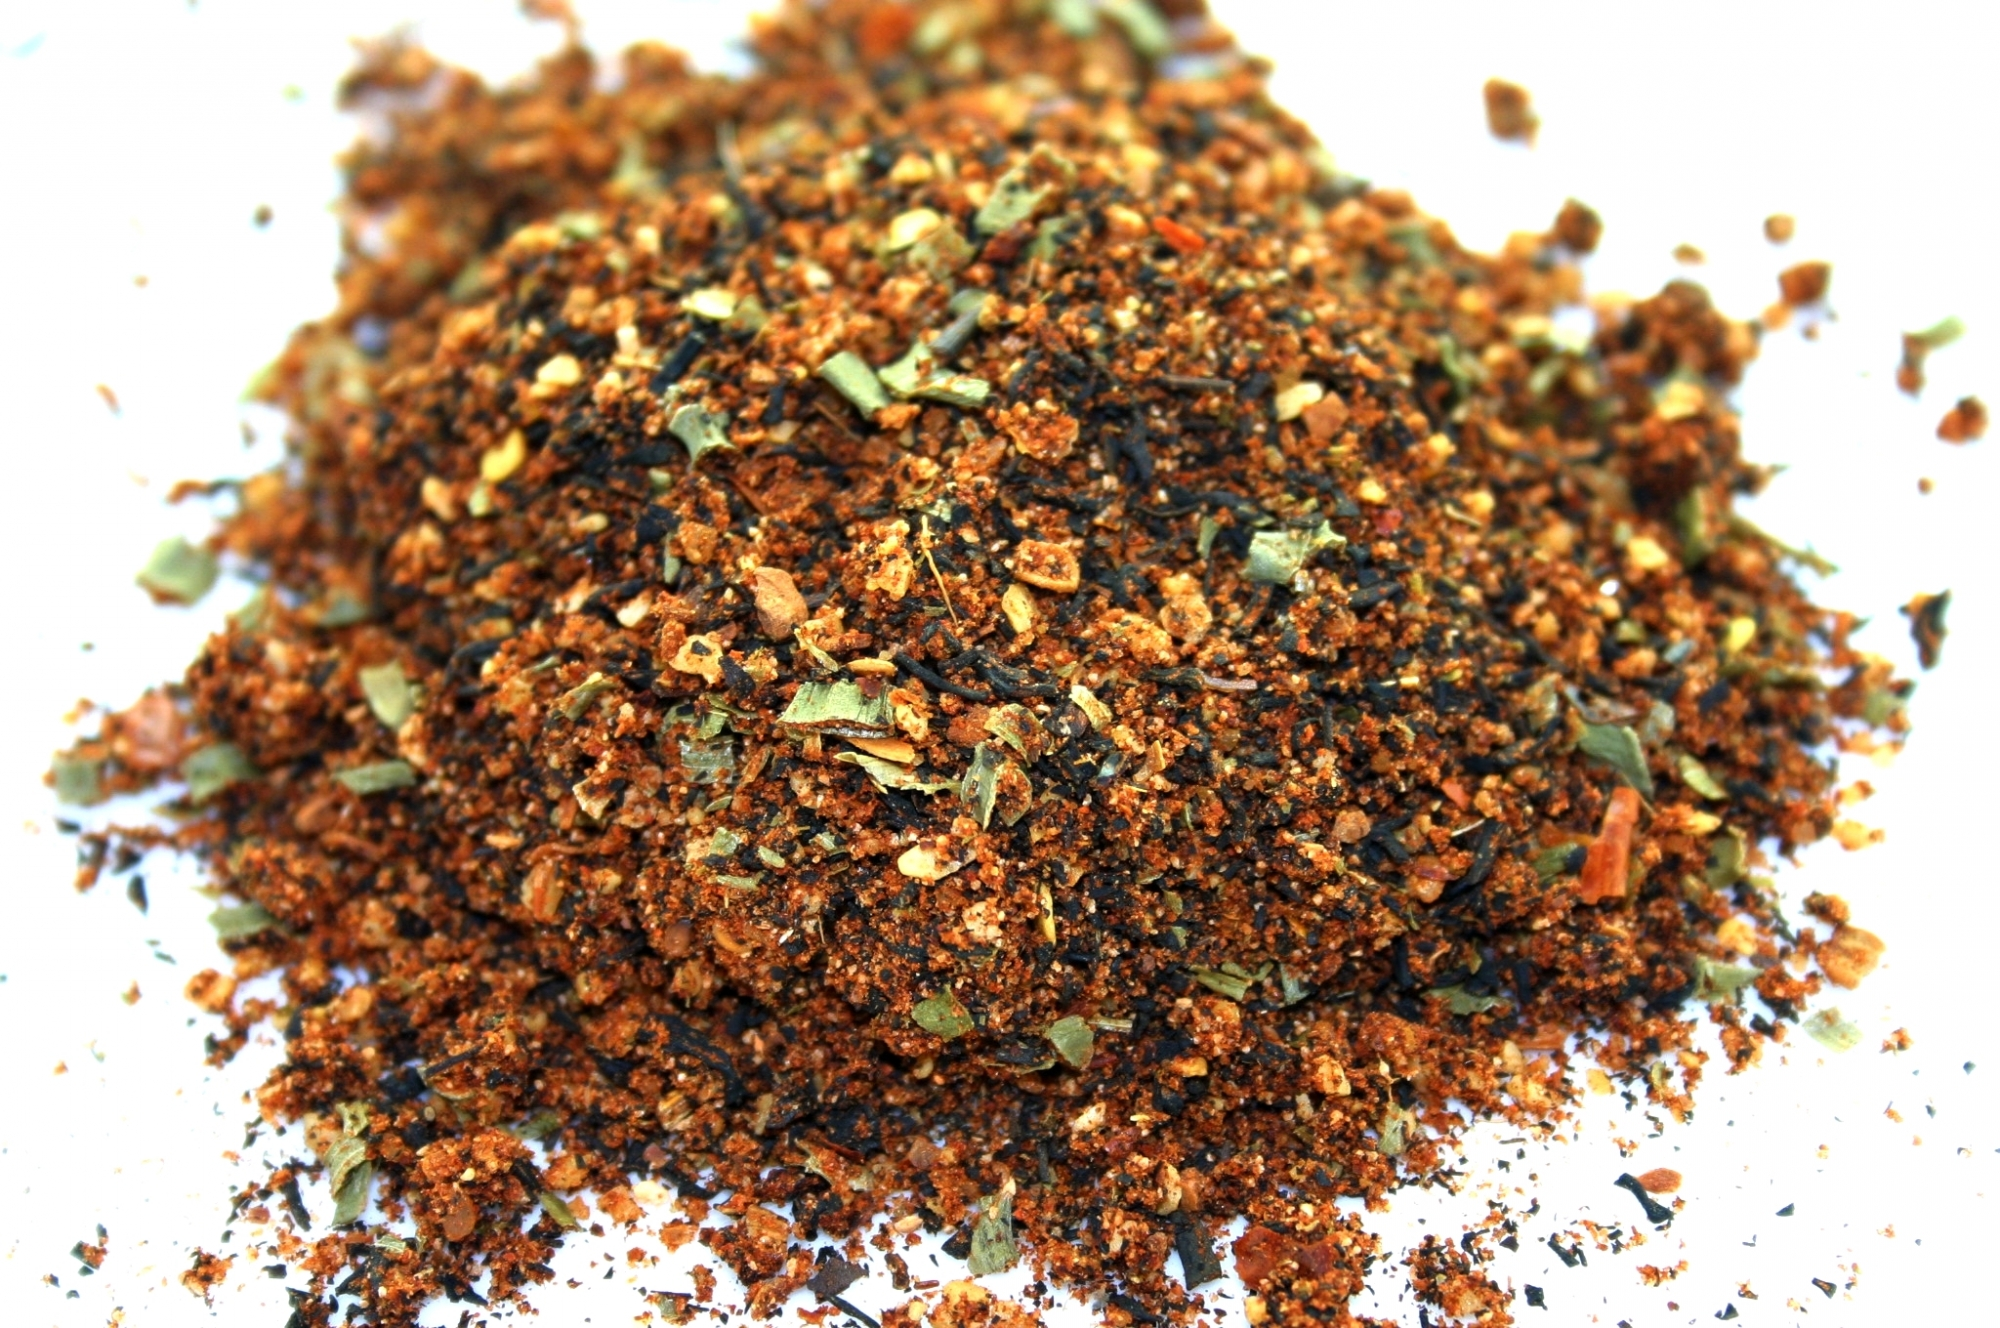 spice blend for irregular periods